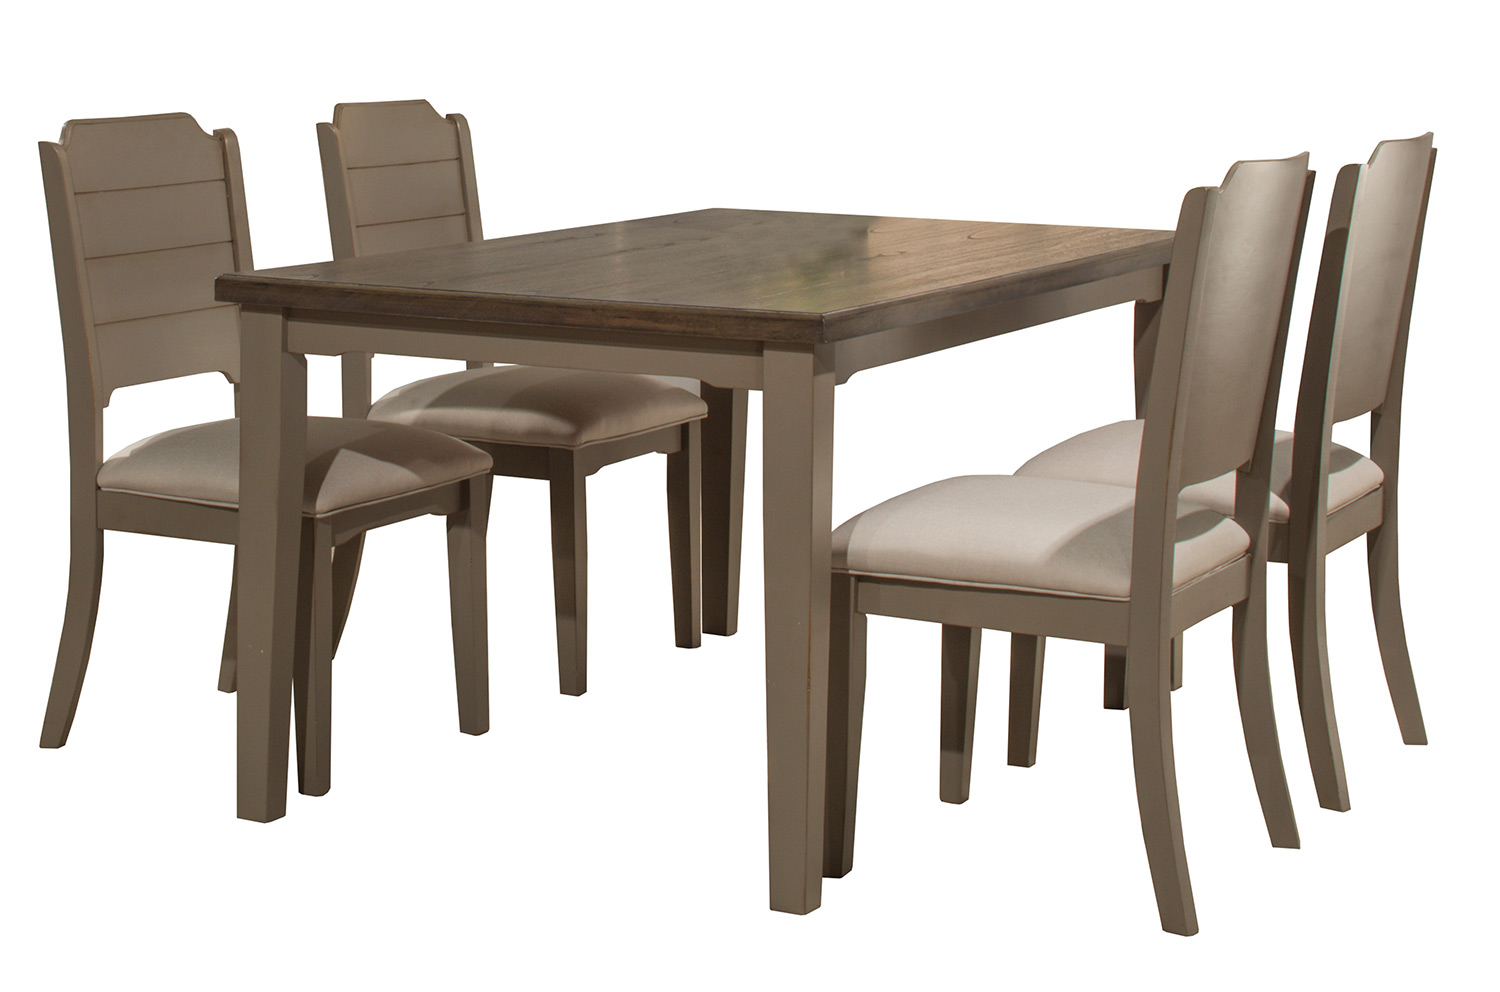 Hillsdale Clarion Rectangle Dining Set - Gray